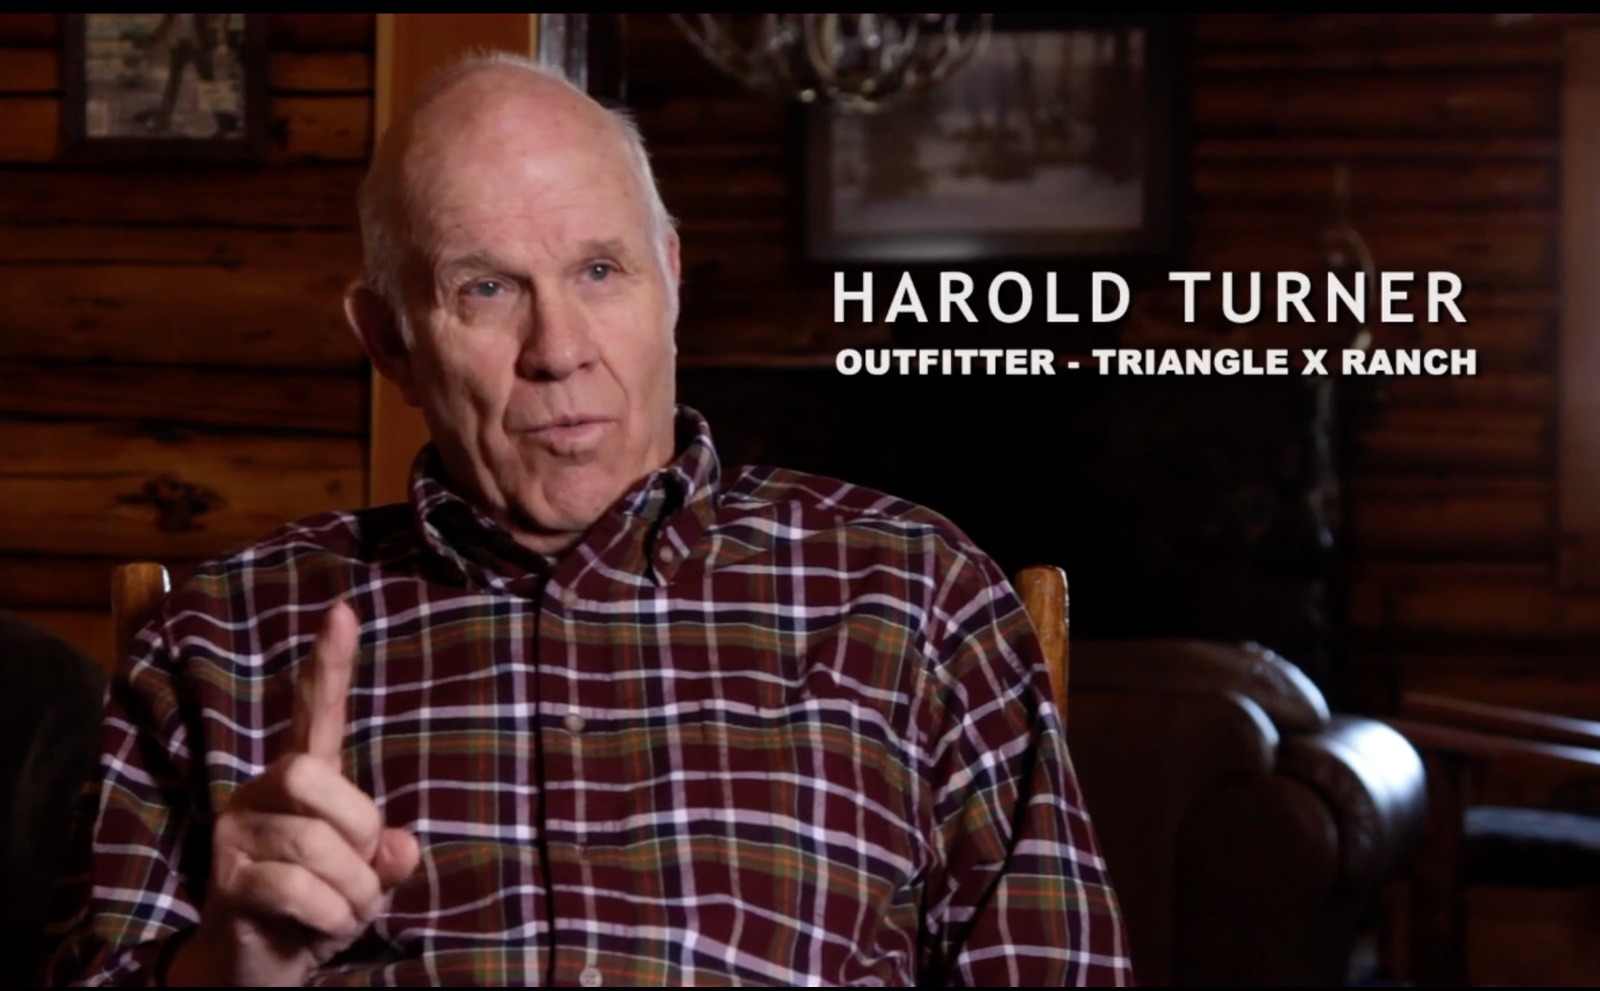 Screenshot of Jackson Hole outfitter and guide Harold Turner giving interview to filmmaker Danny Schmidt in his documentary Feeding The Problem. Mr. Turner vigorously opposes shutting down artificial feeding of elk.